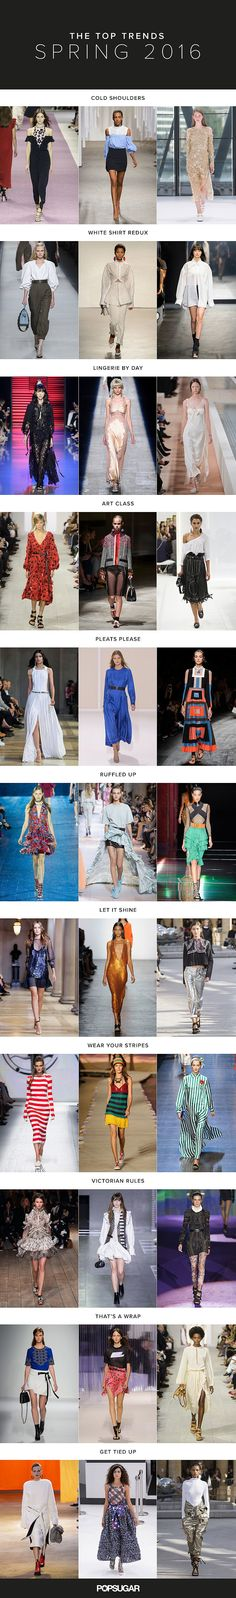 The 11 Biggest Trends For 2016  Loving that metallics are going to be cool in the spring! And who doesn't love wrap skirts, sexy open shoulder shirts and a waist cinching sash to show off their #snatched body!